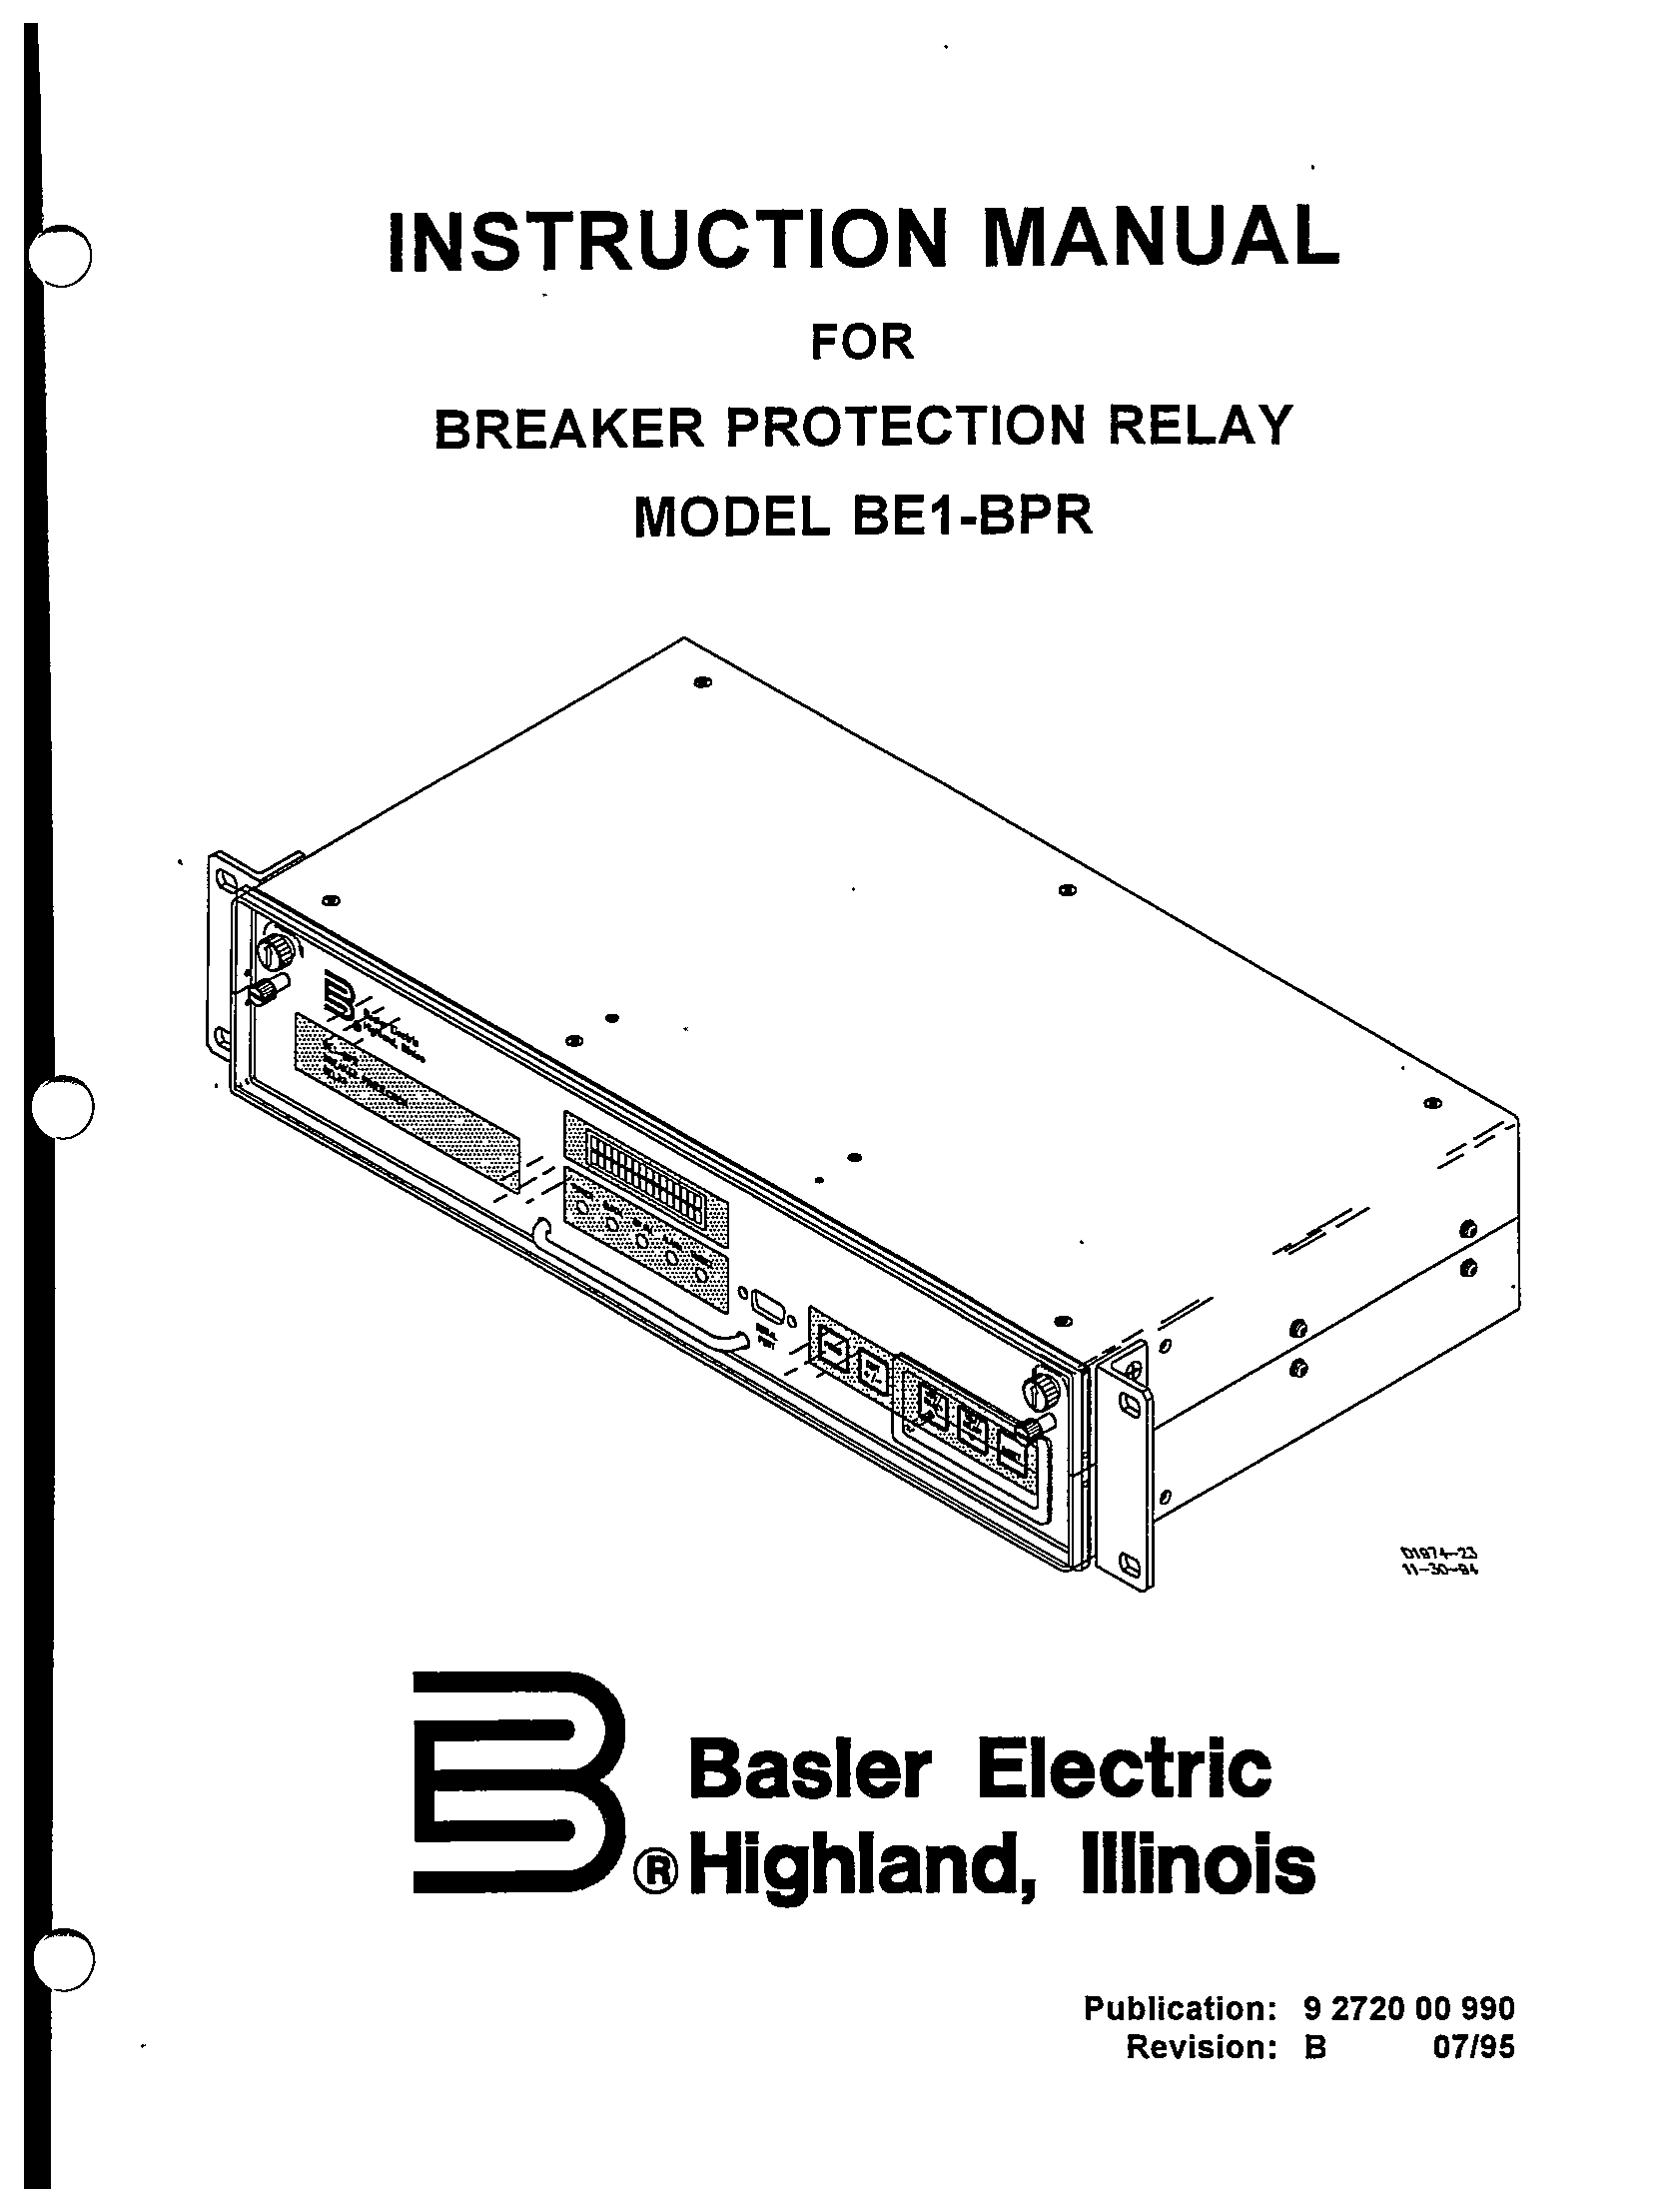 BREAKER PROTECTION RELAY MODEL BE1-BPR REVISION B MANUAL